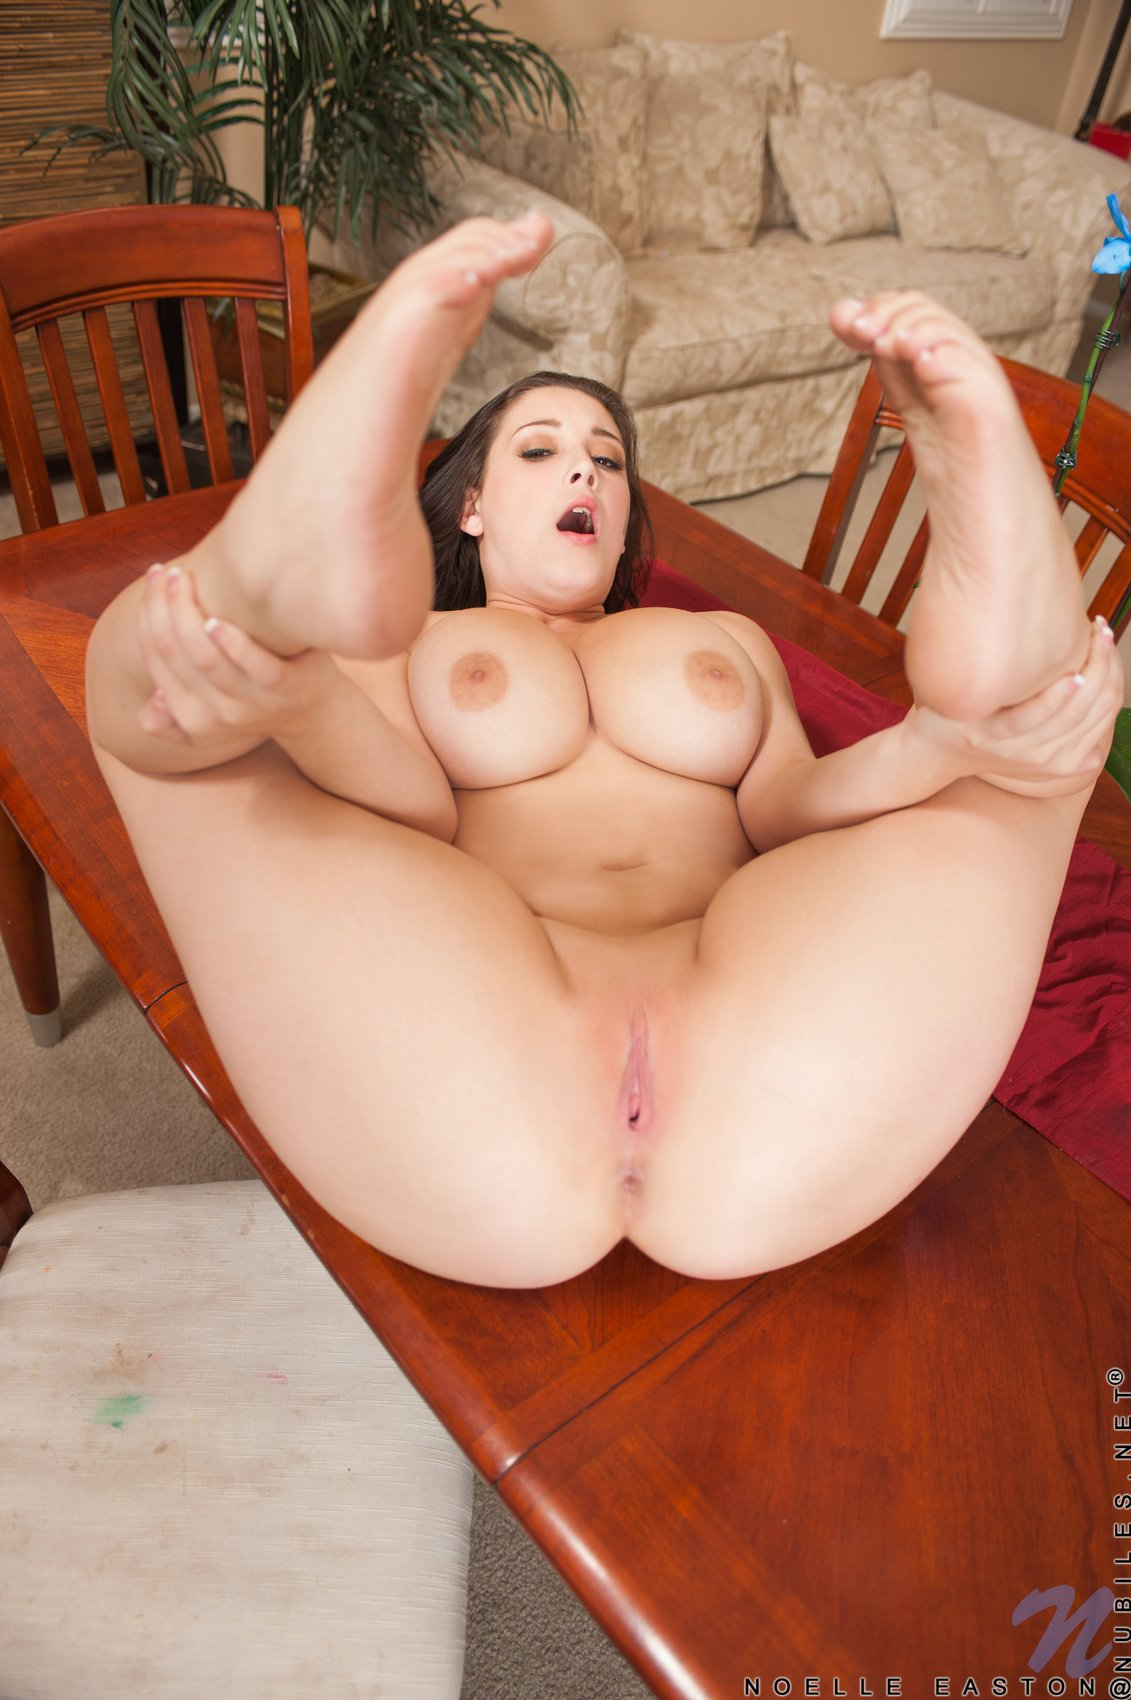 Think, that Big tits noelle easton